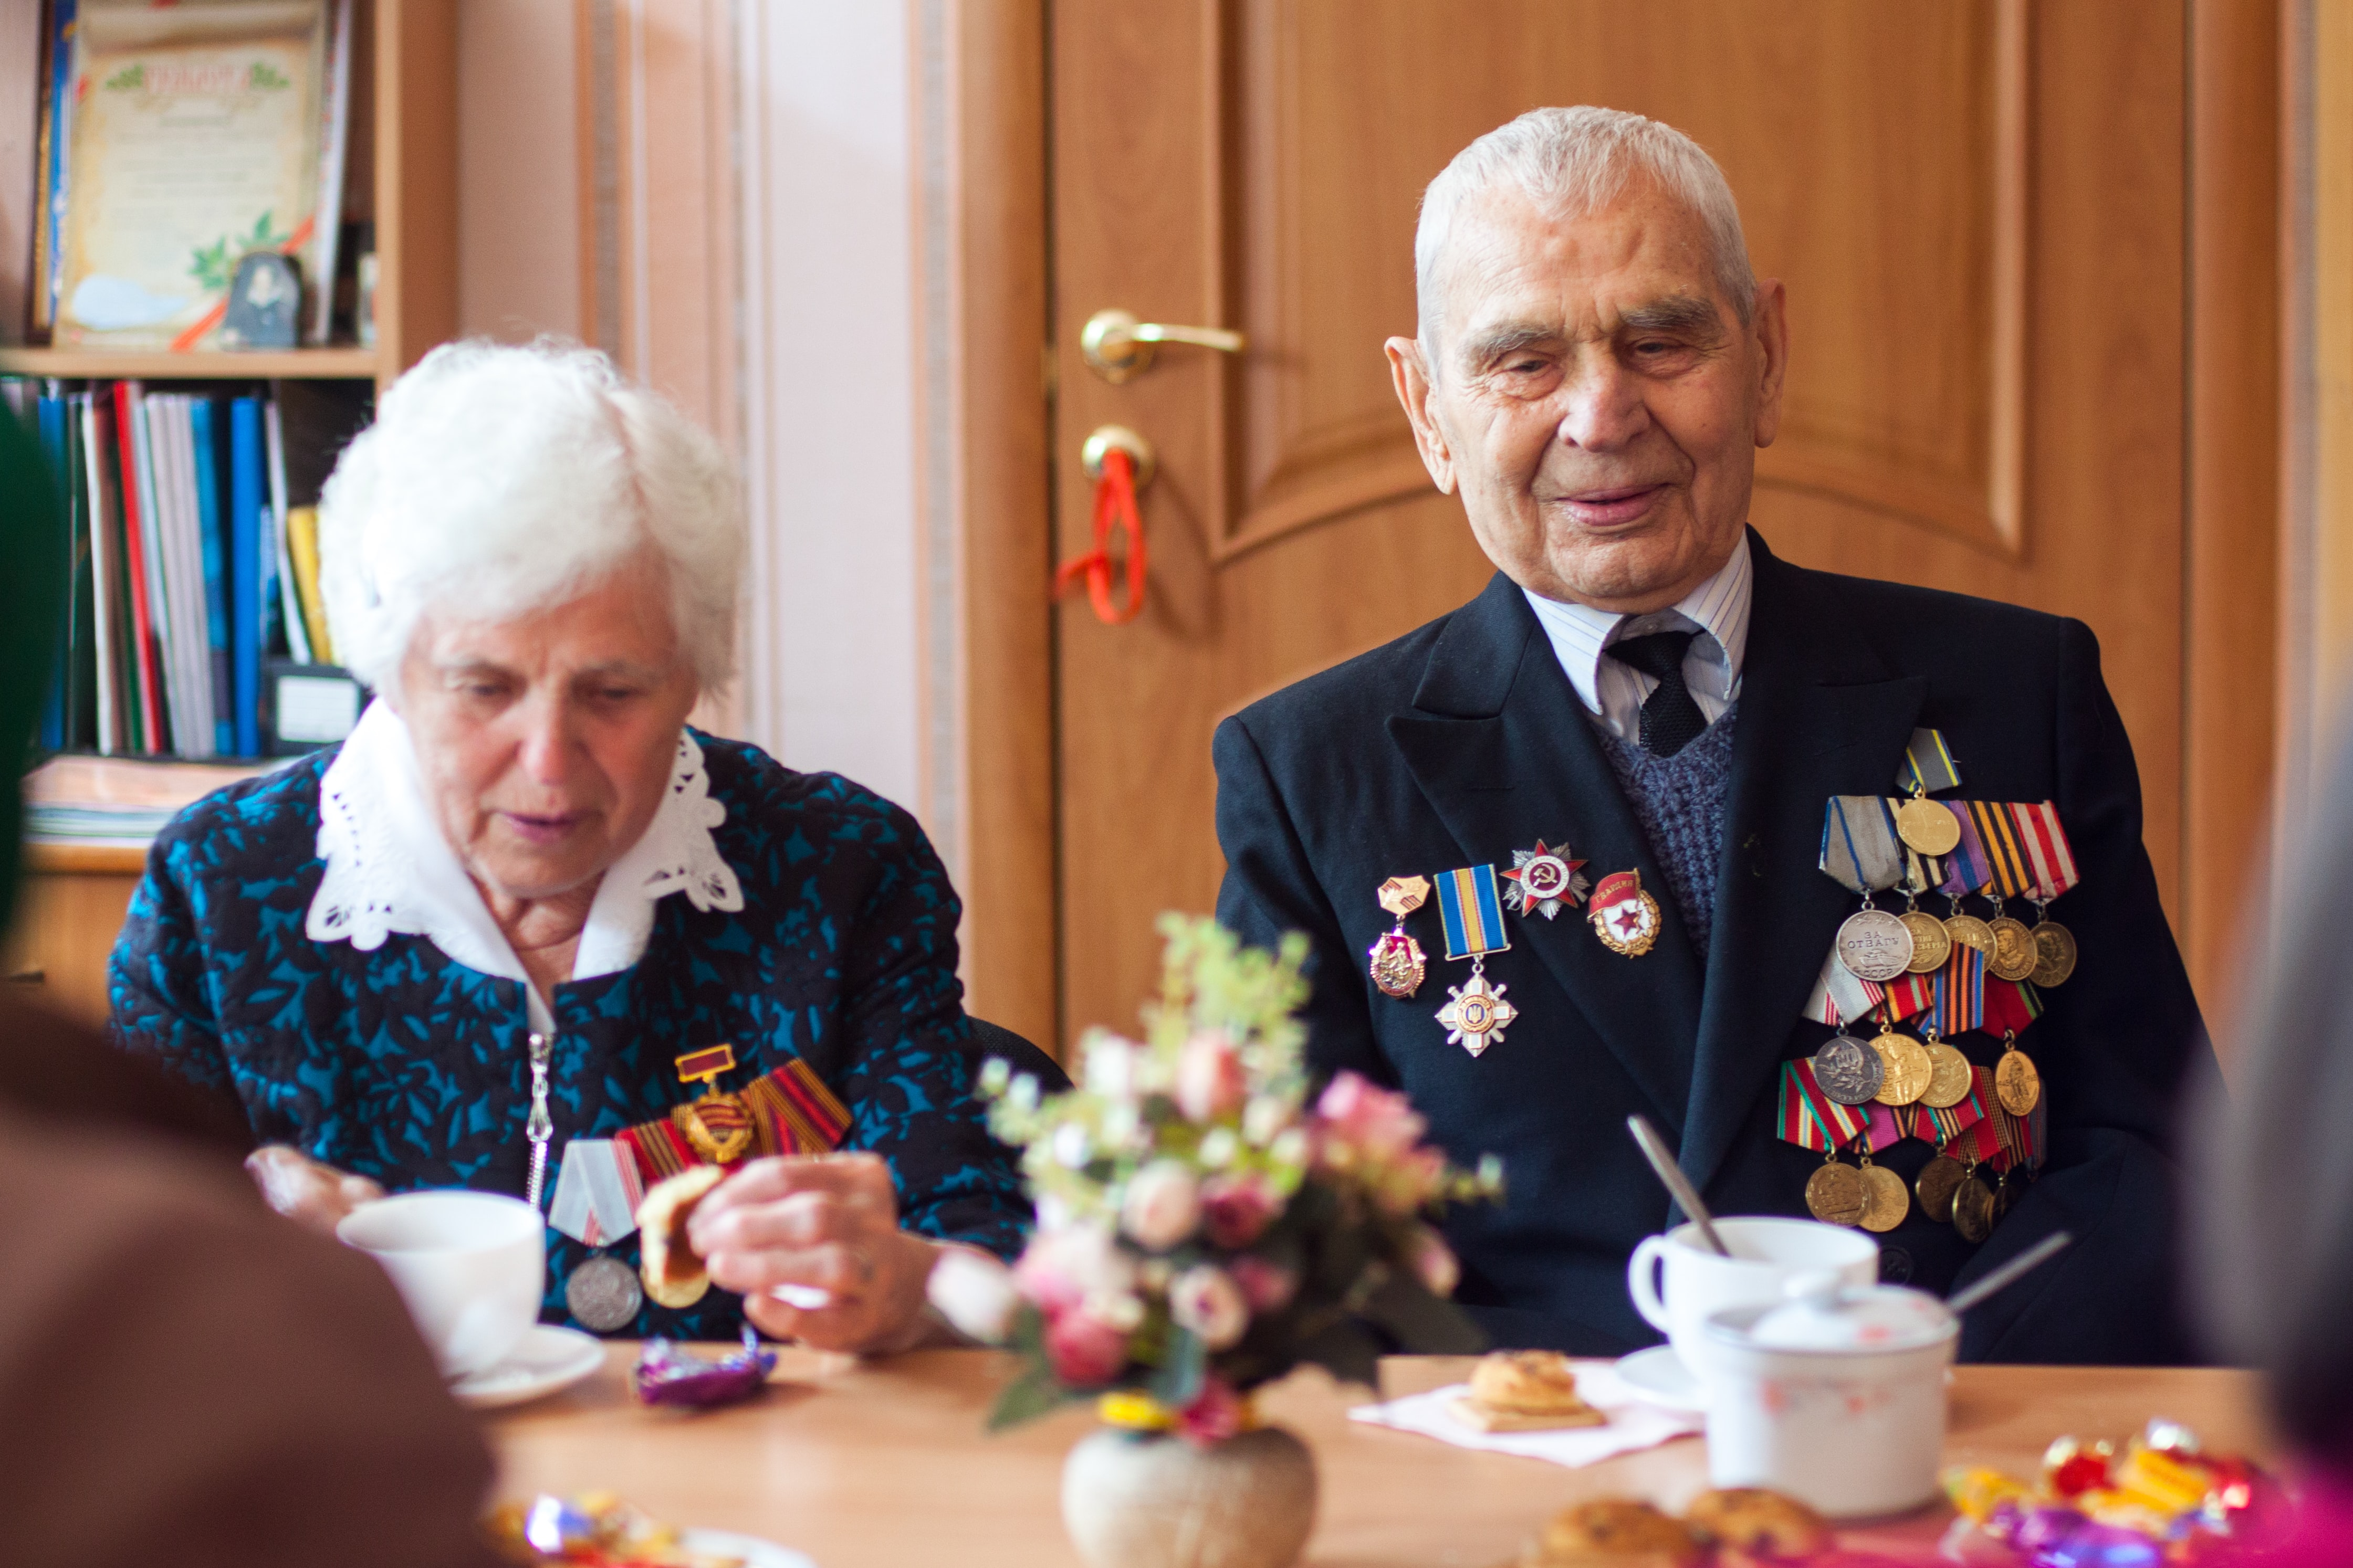 A retired and old Ukraine soldier sitting with his wife and medals on his jacket.